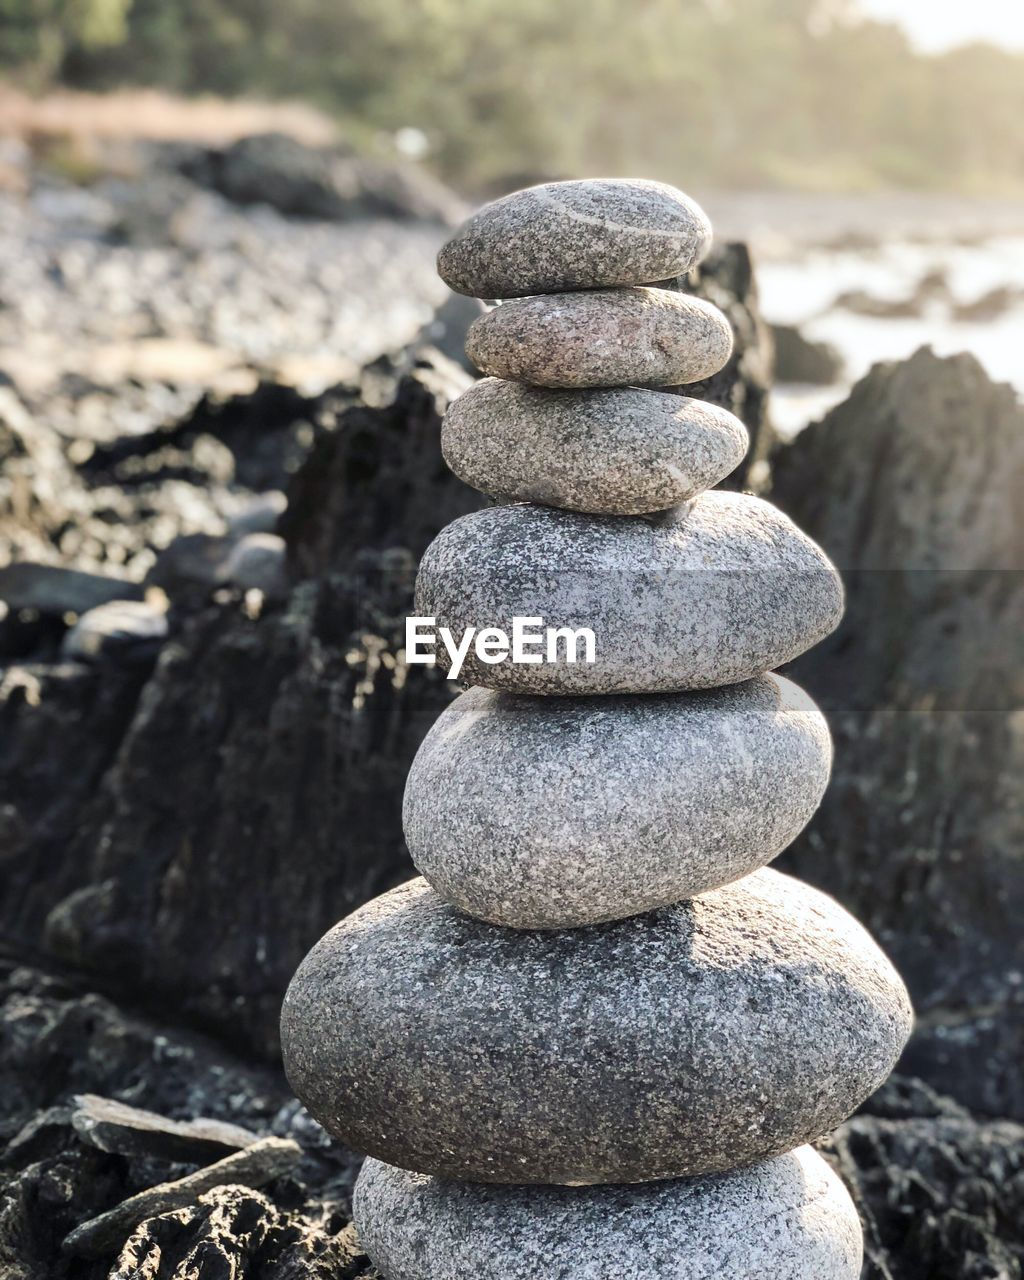 stack, balance, zen-like, stone - object, stone, solid, pebble, rock, nature, focus on foreground, rock - object, land, no people, sunlight, tranquility, close-up, day, outdoors, textured, beach